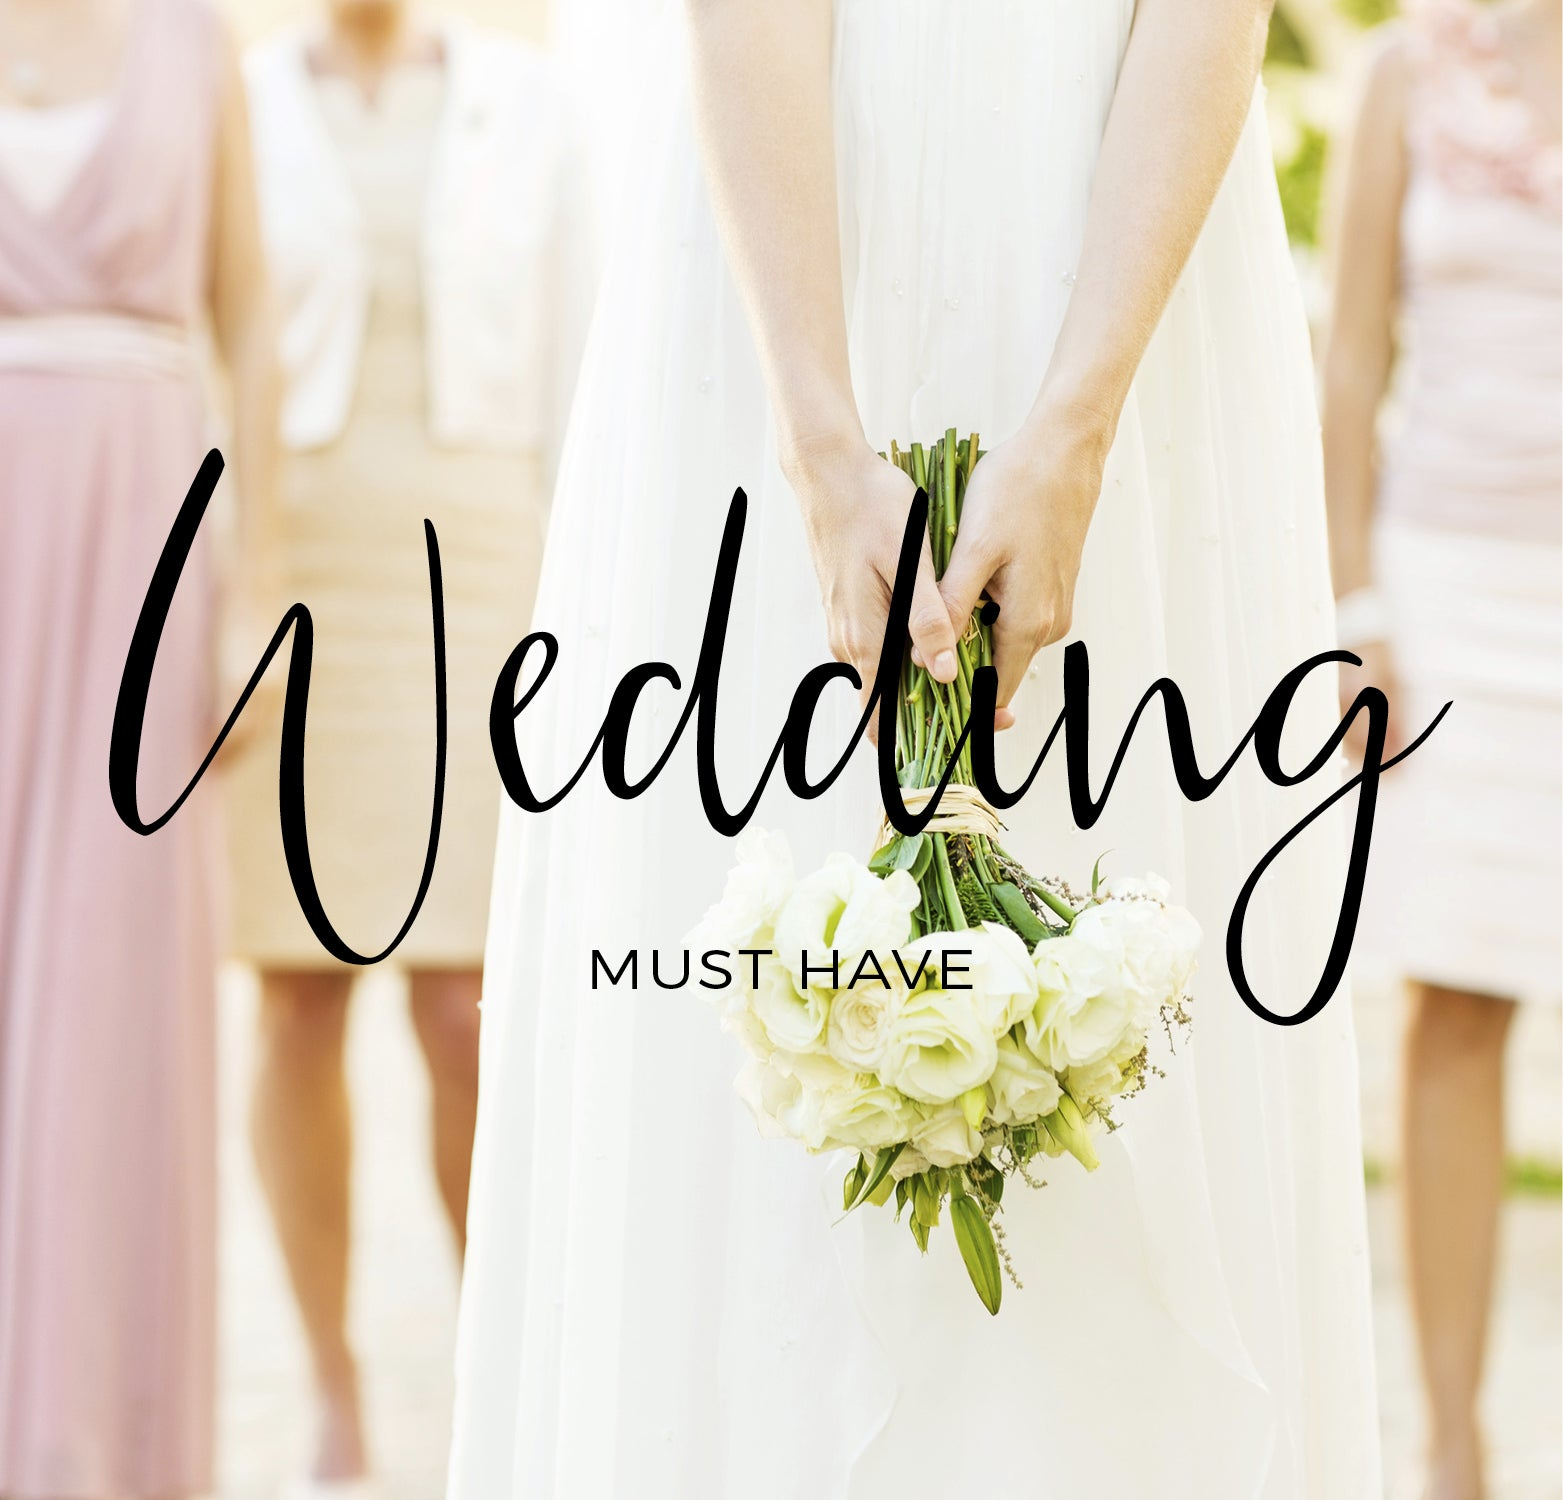 Invited to a Wedding? Maid-of-honor or Bridesmaid? Here are our tips!